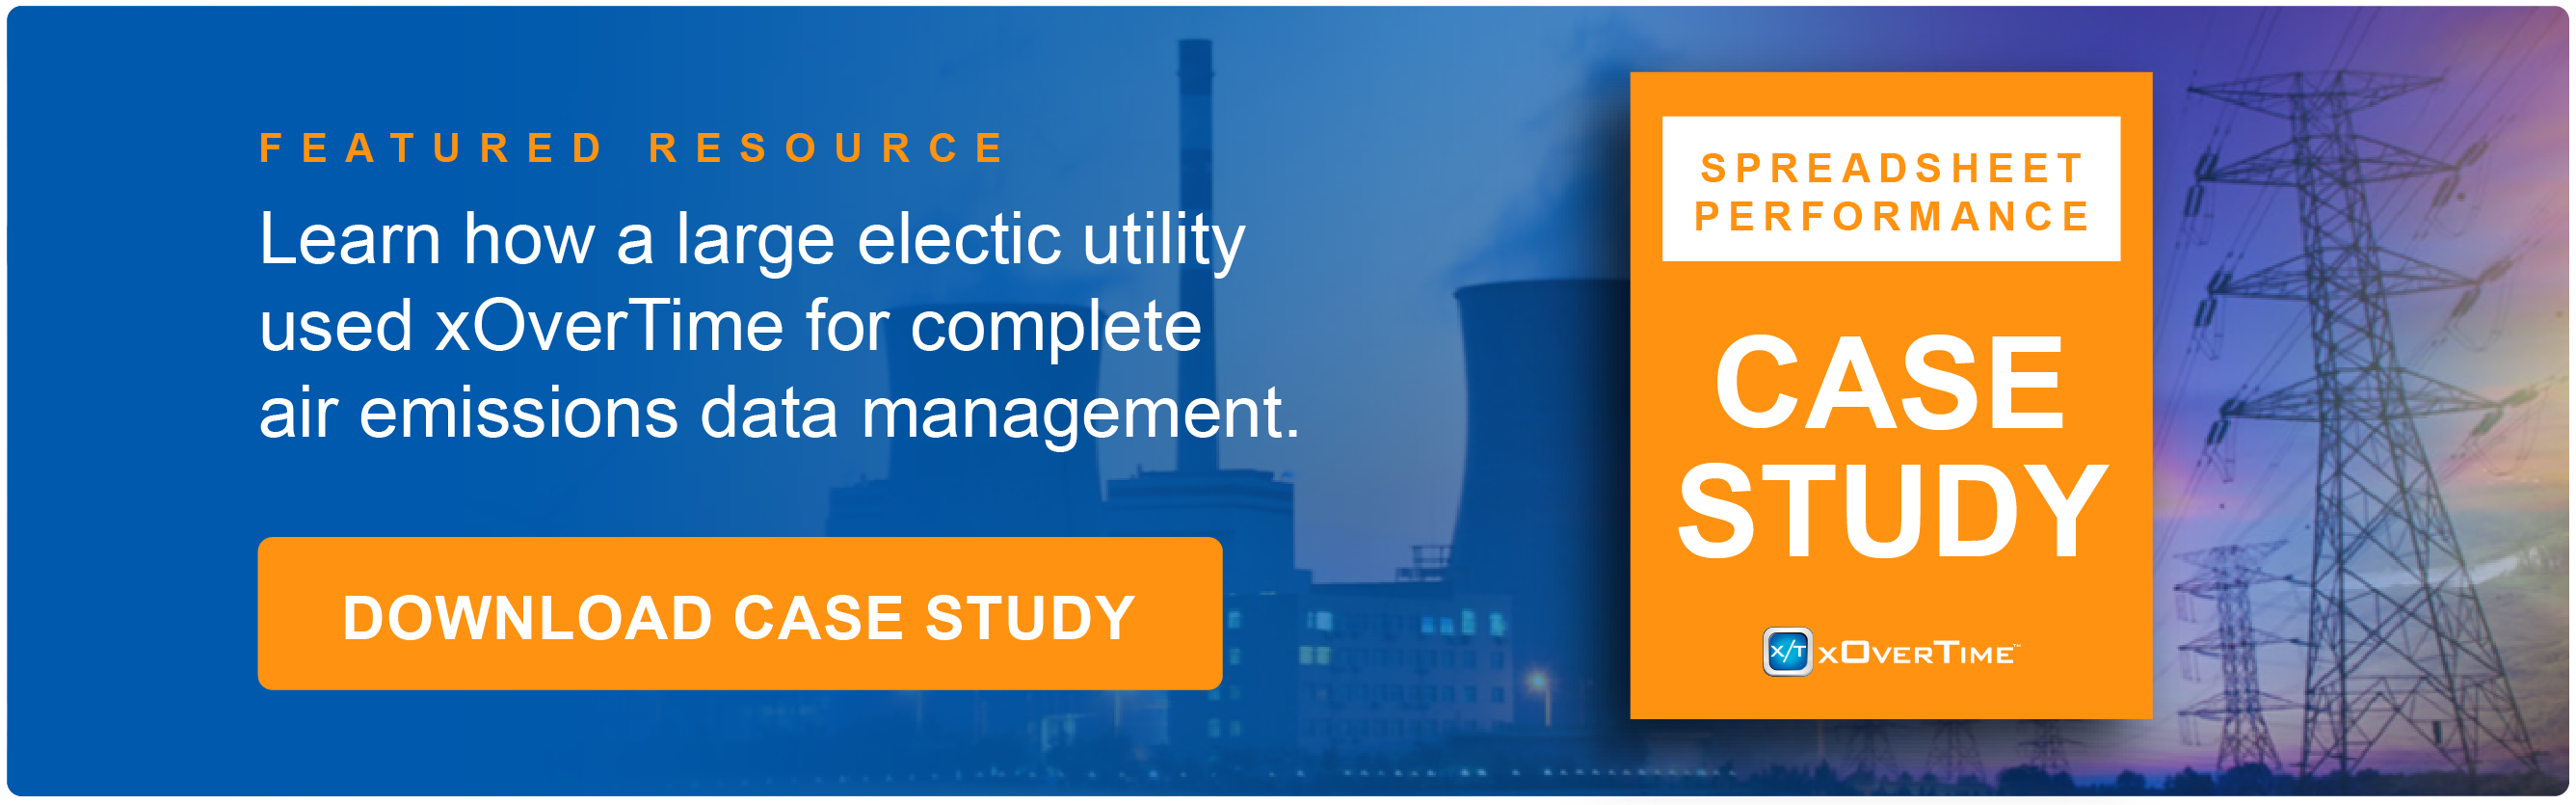 Download the Large Electric Utility Case Study